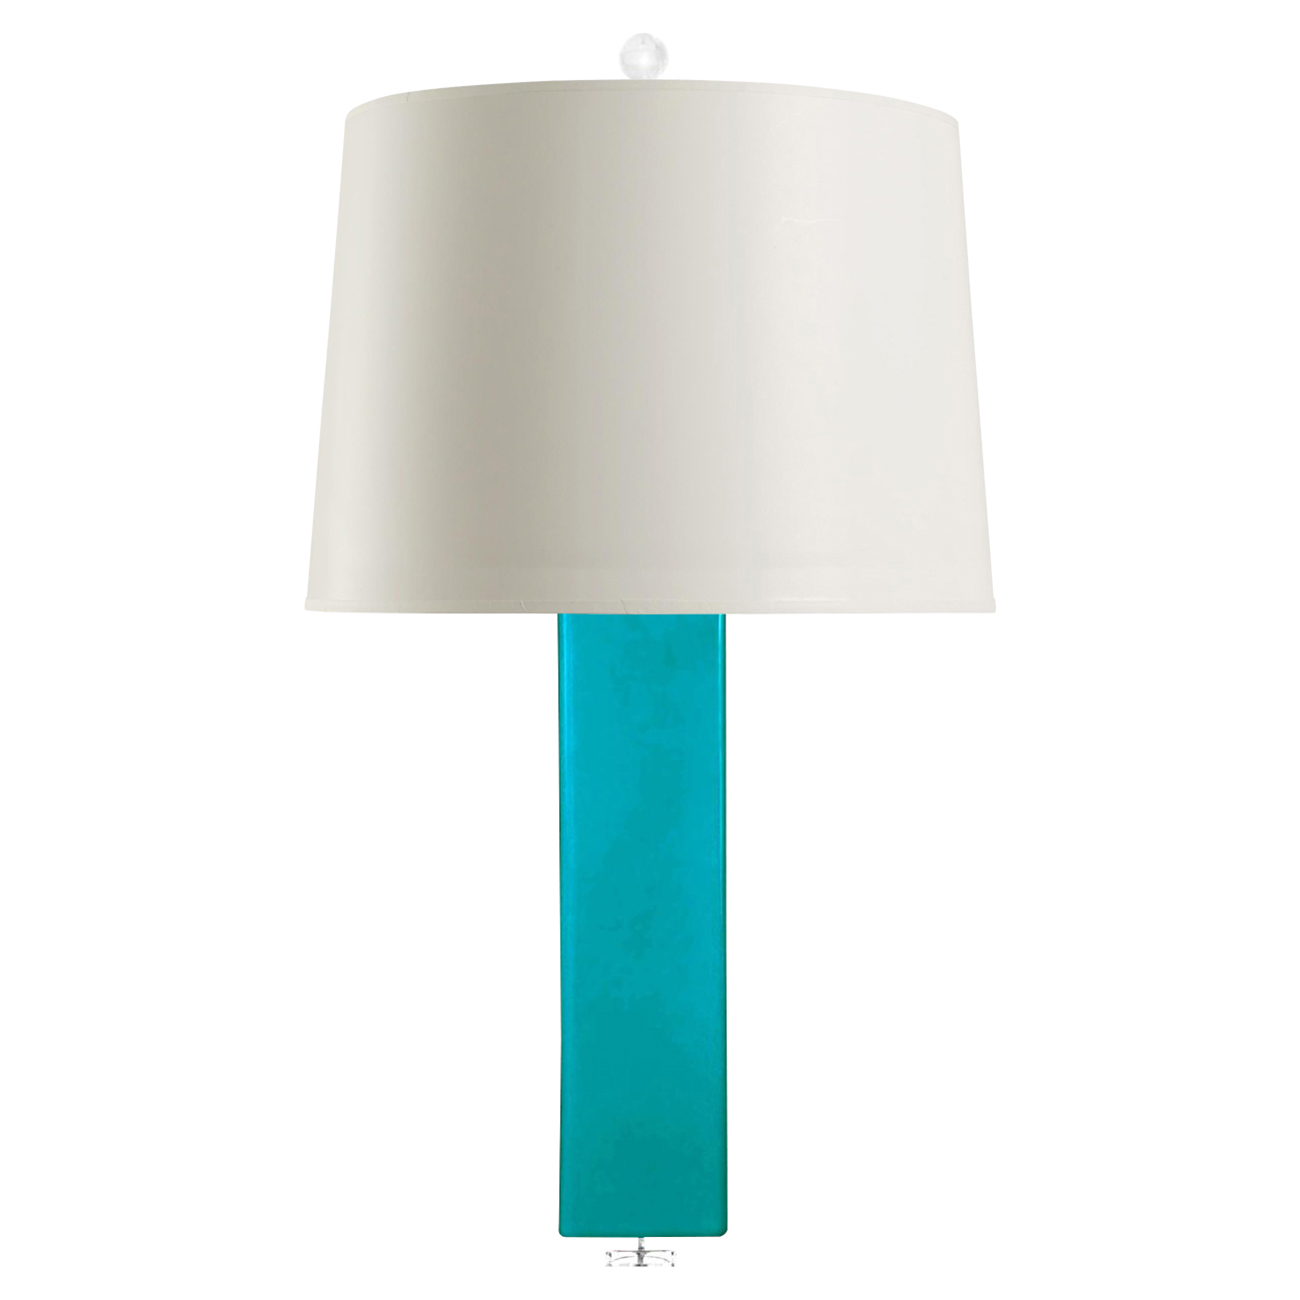 Pula Coastal Rectangle Column Turquoise Ceramic Paper Table Lamp